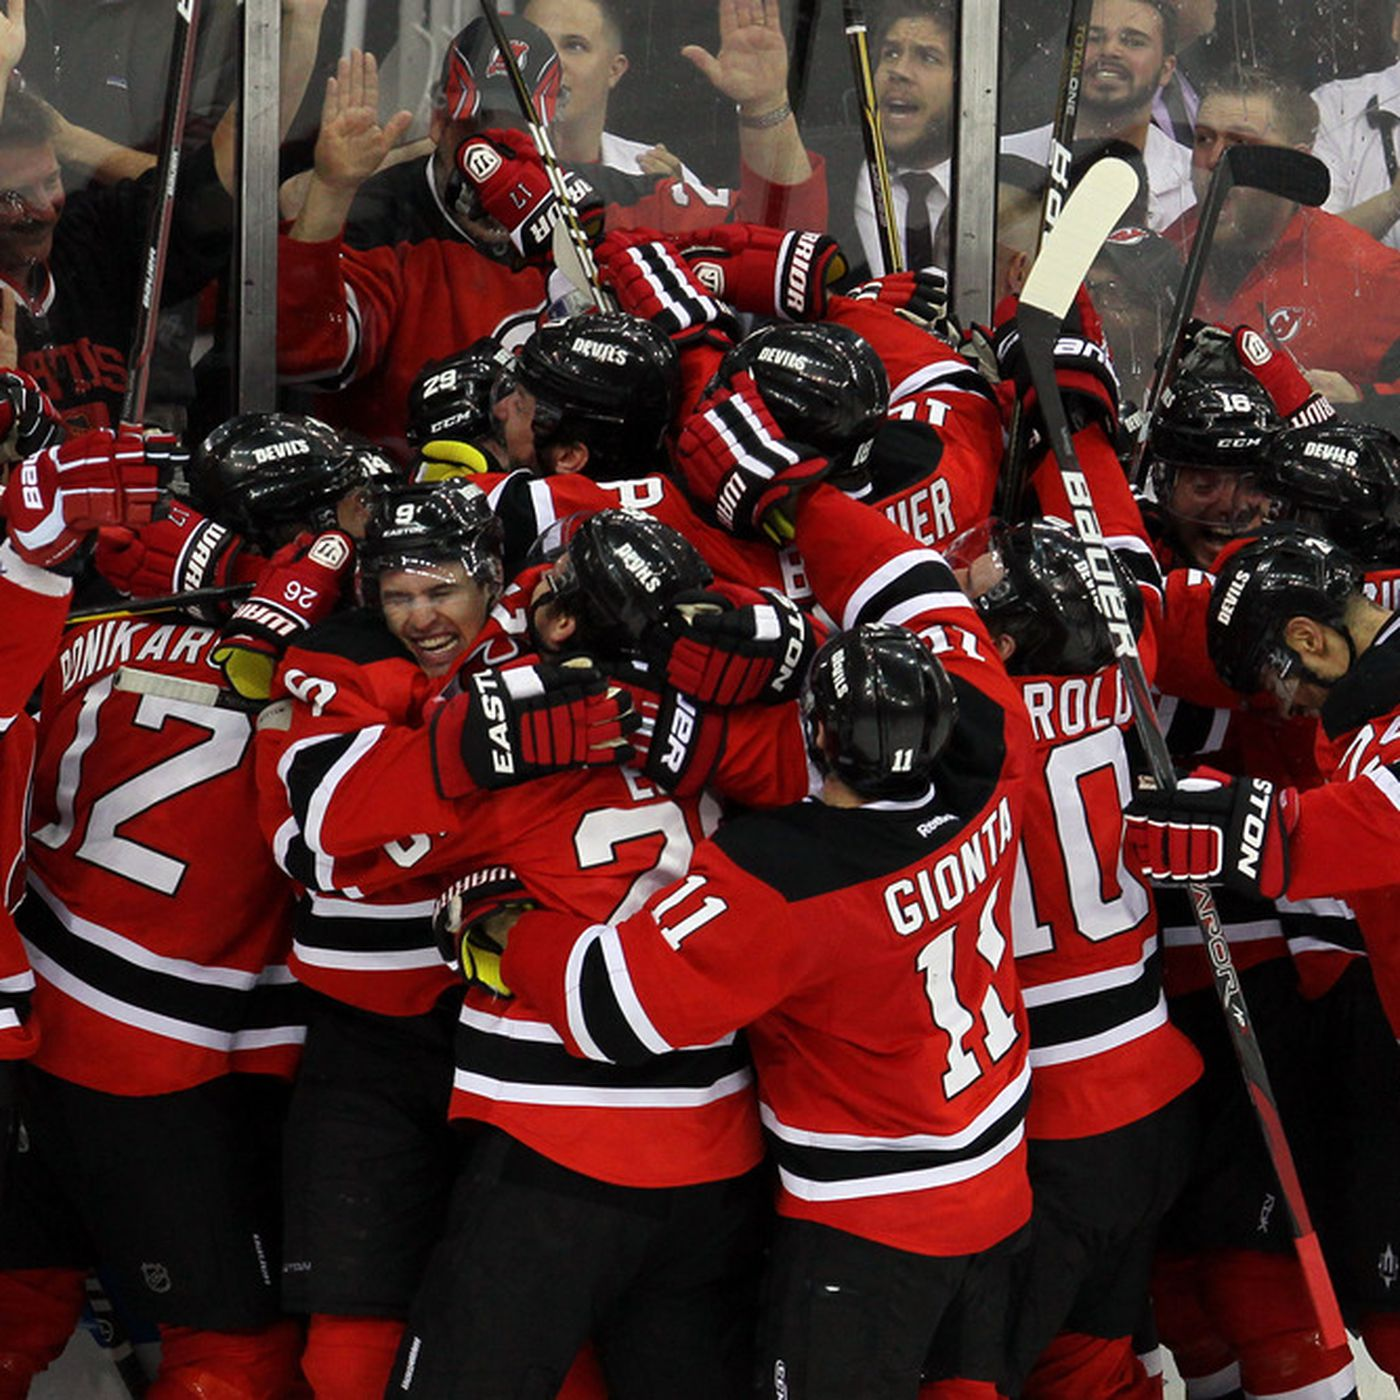 032e1f1cd5c New Jersey Devils vs. Los Angeles Kings: The 2012 NHL Stanley Cup Finals  Predictions